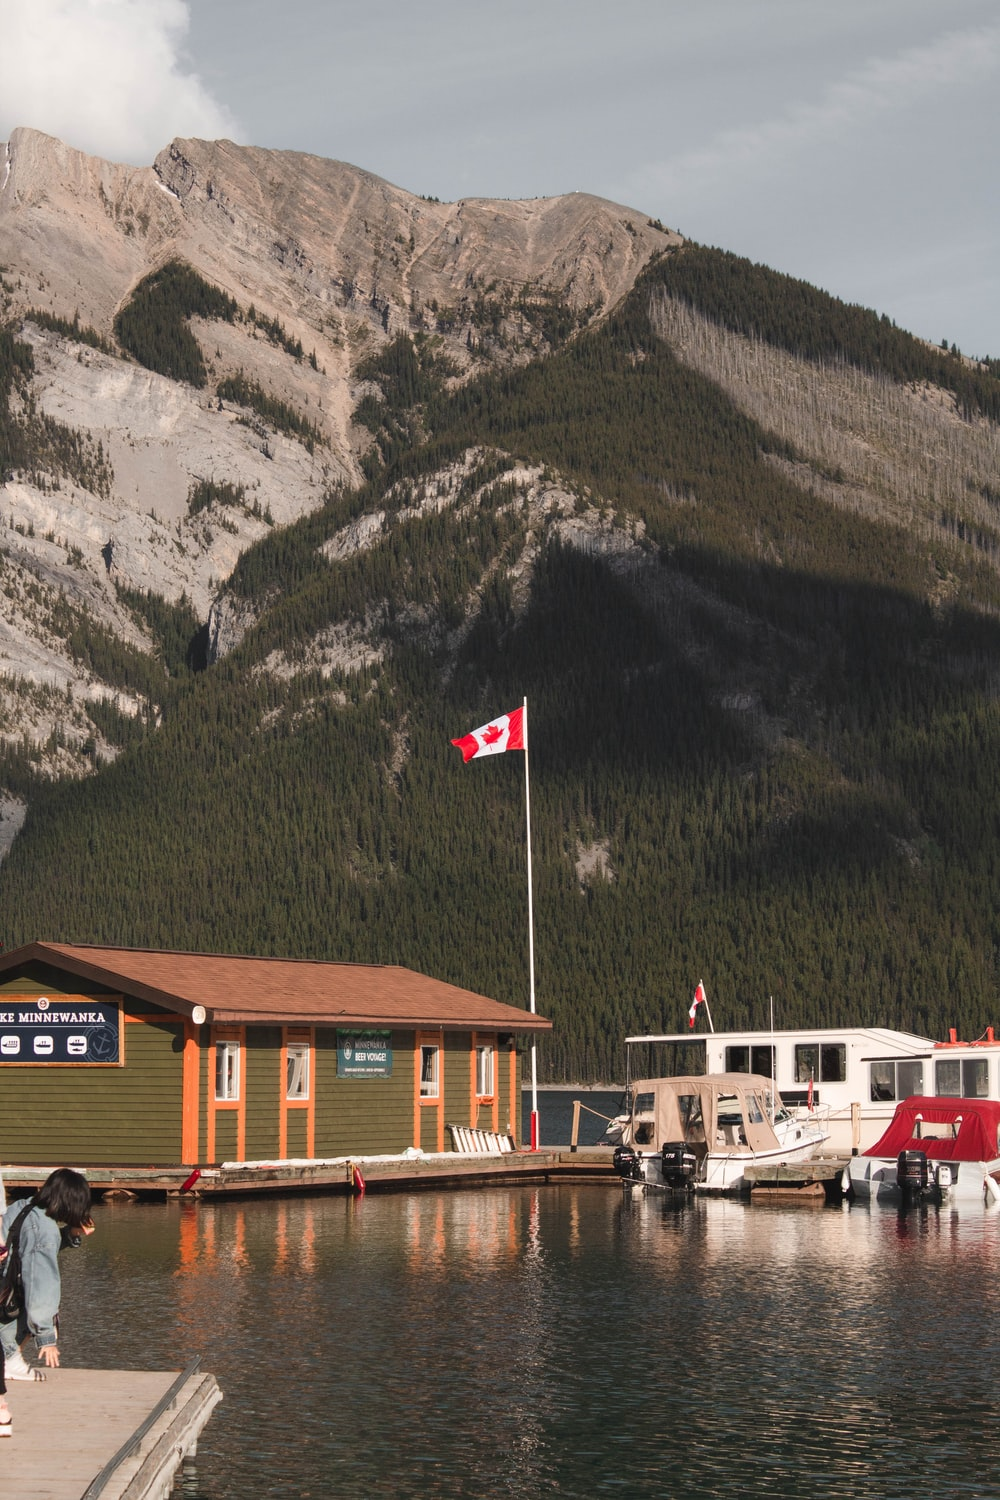 white and brown boat on dock near mountain during daytime